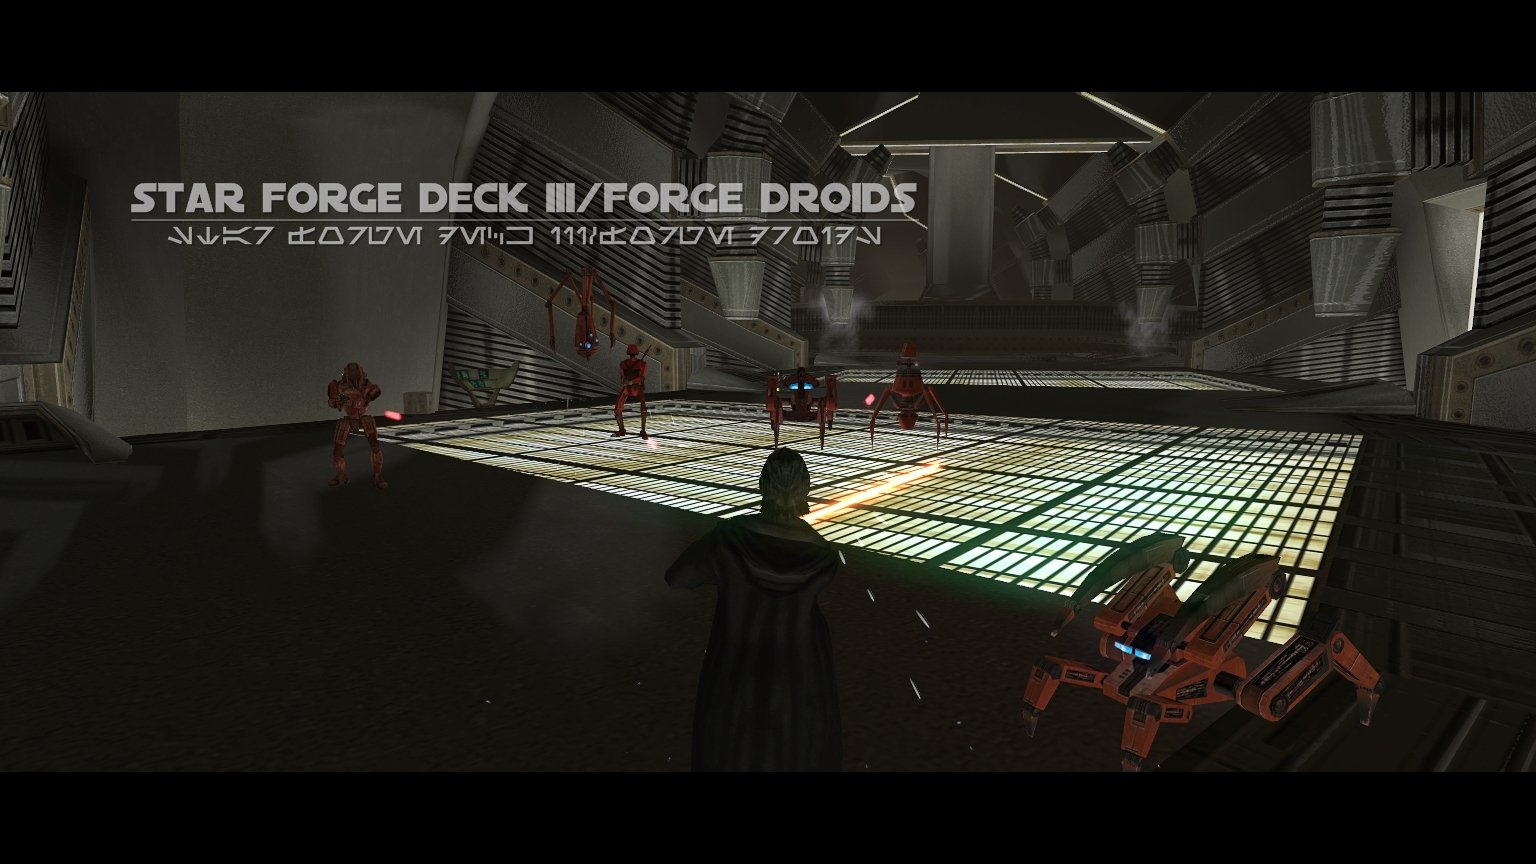 Star Forge Deck III: Forge Droids